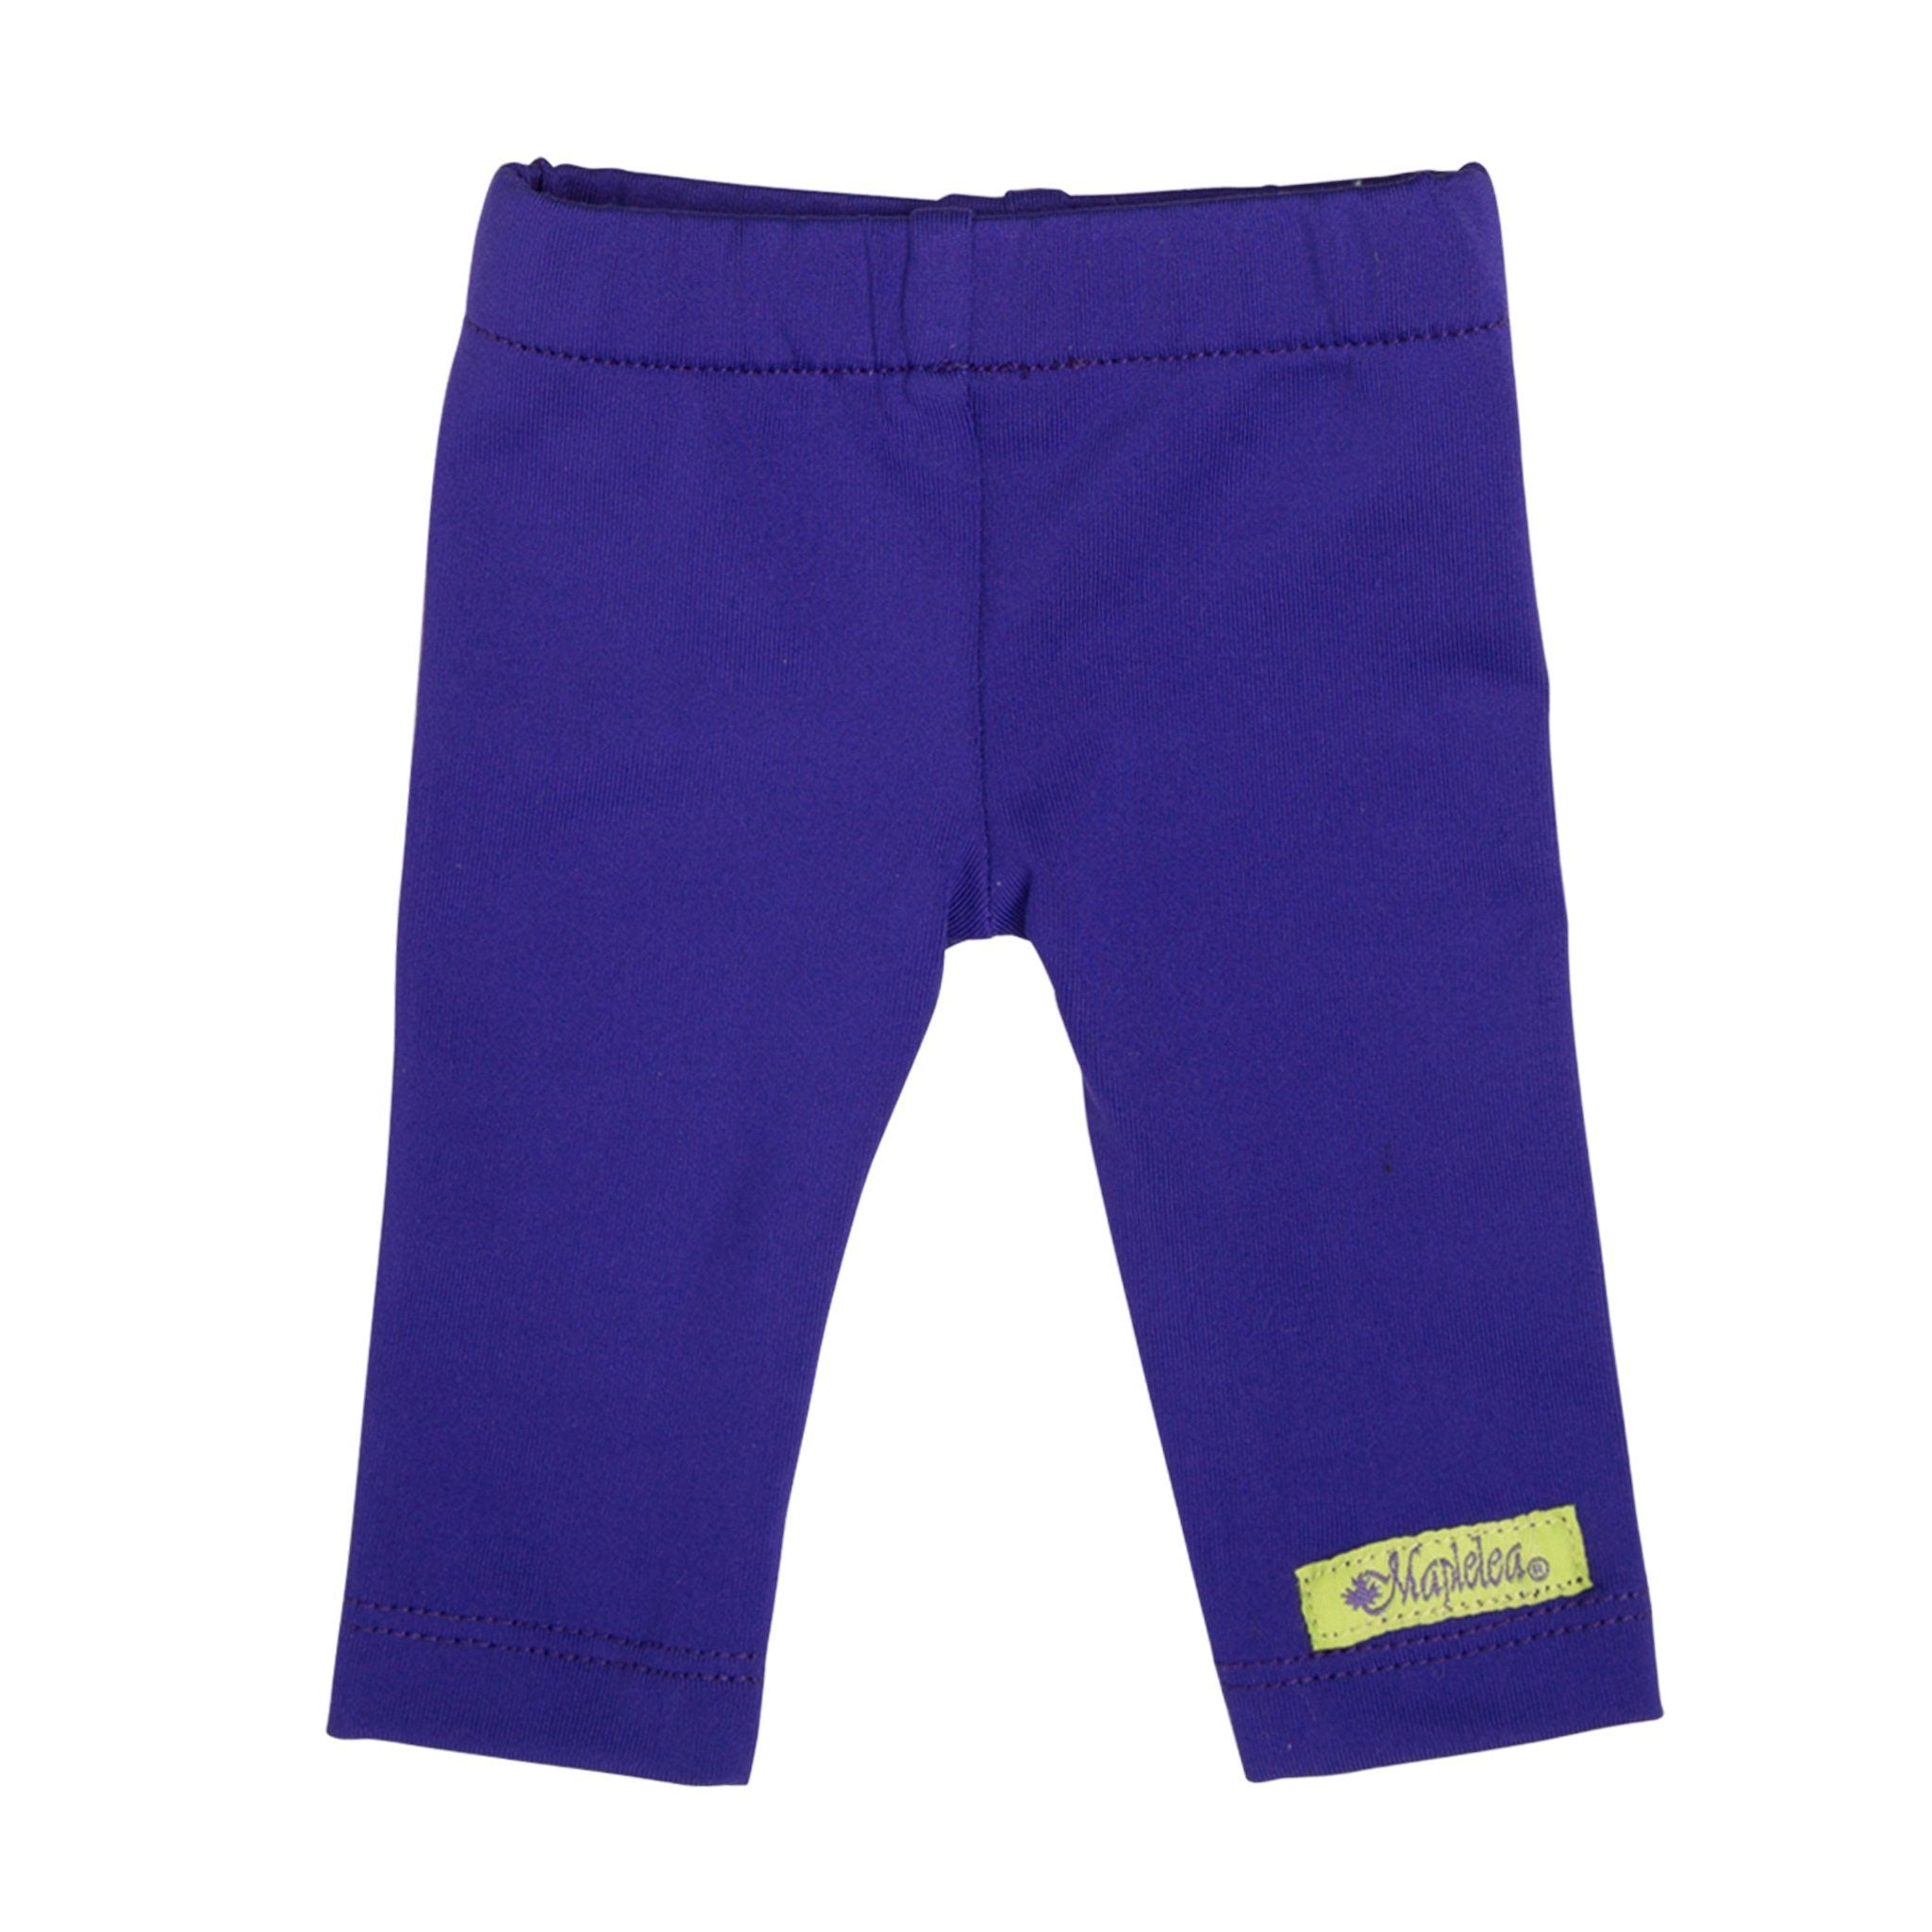 Purple capri pants fit all 18 inch dolls.